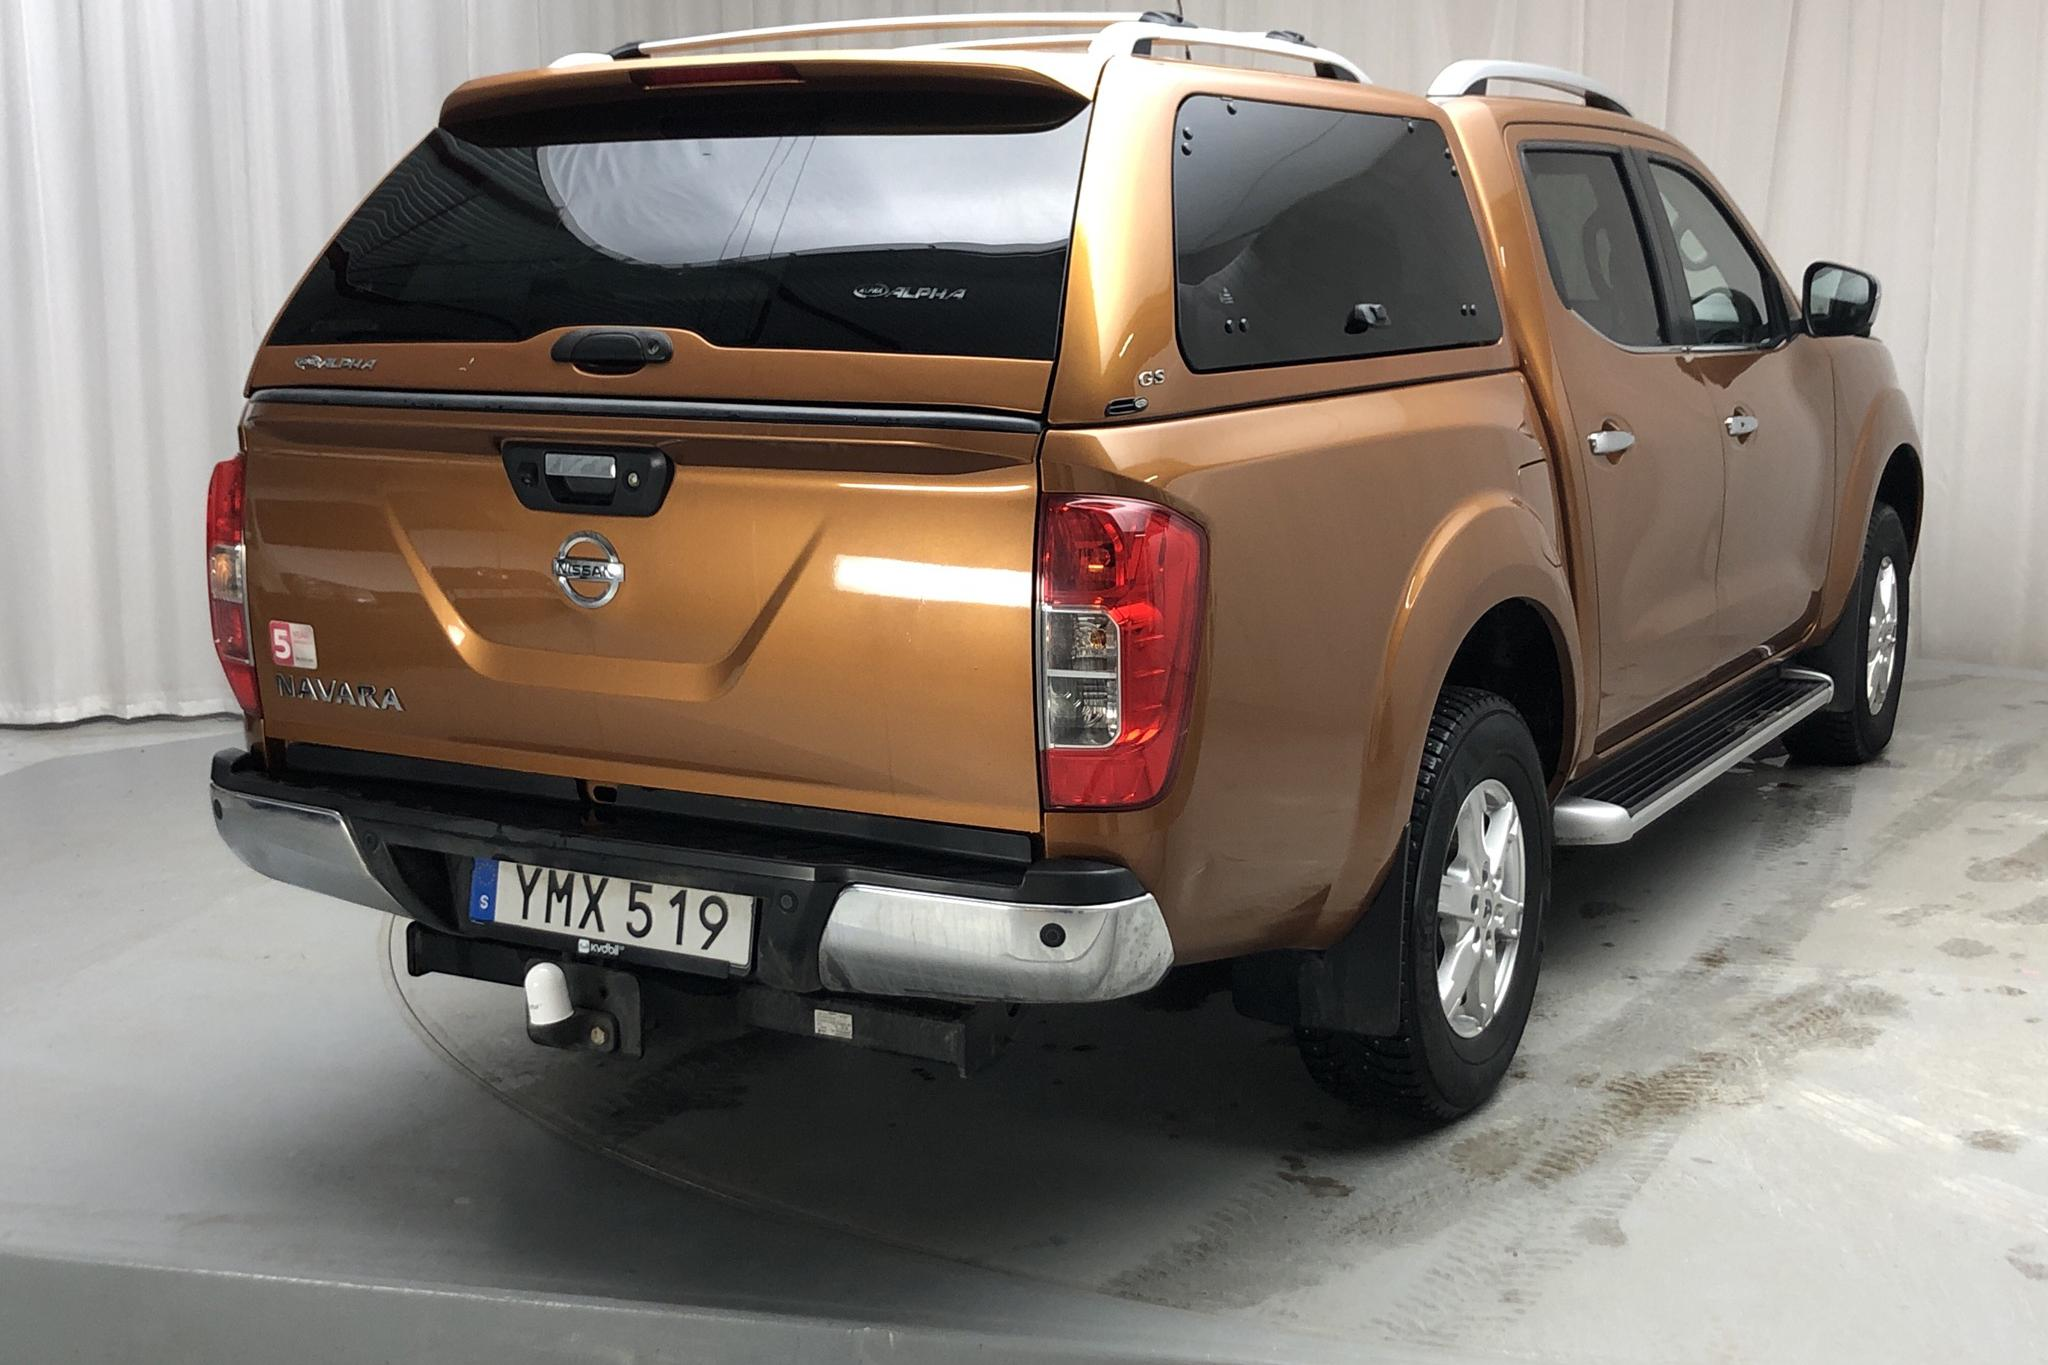 Nissan Navara 2.3 dCi 4x4 (190hk) - 73 920 km - Automatic - orange - 2018